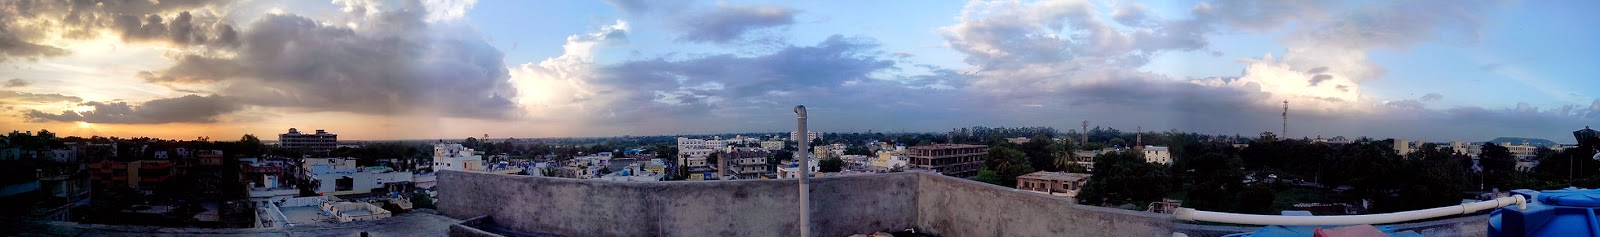 panaroma shot taken at vishnupuri nanded